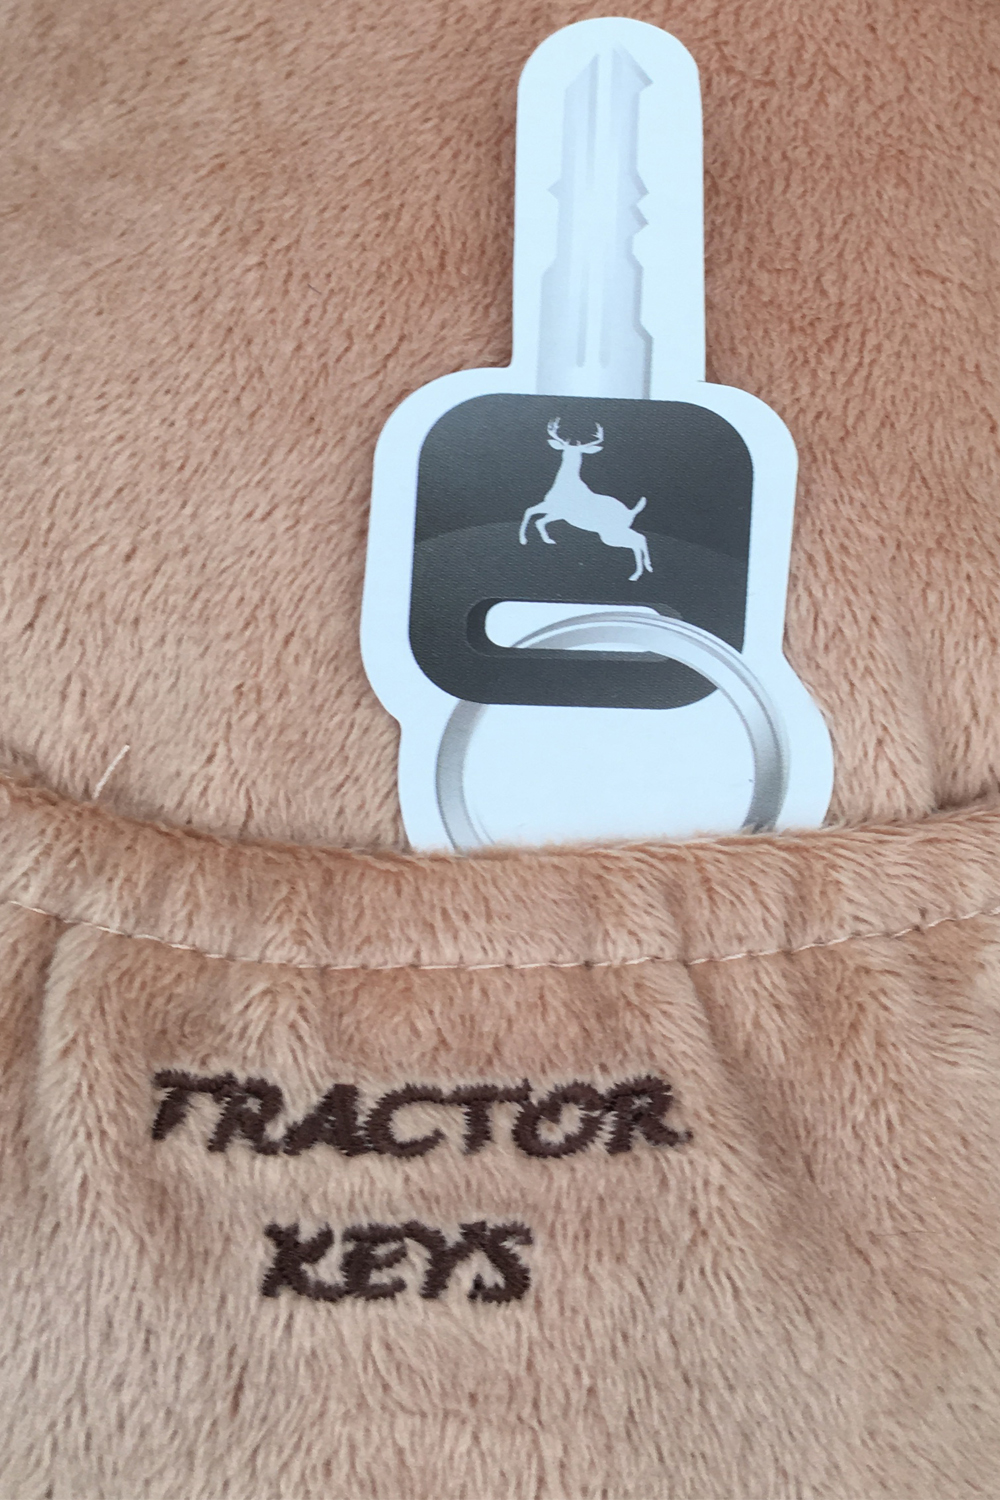 thumbnail 24 - Work-Spuddy-Couch-Potato-Career-Keyworkers-Cushion-Remote-Holder-Novelty-Pillow